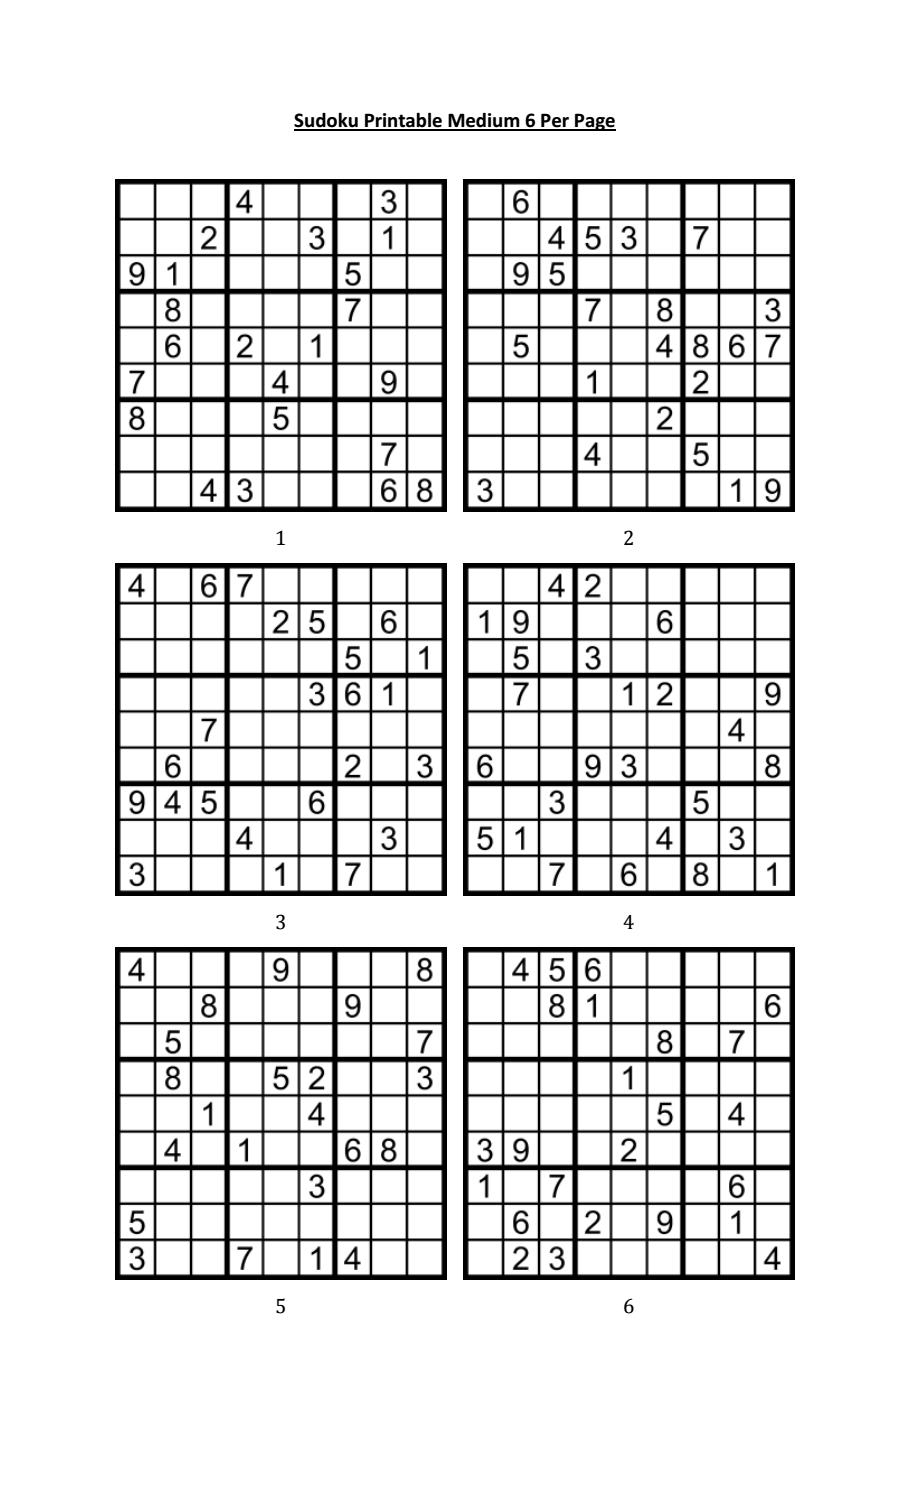 Sudoku Printable Medium 6 Per Pageaaron Woodyear - Issuu - Free Printable Sudoku 6 Per Page